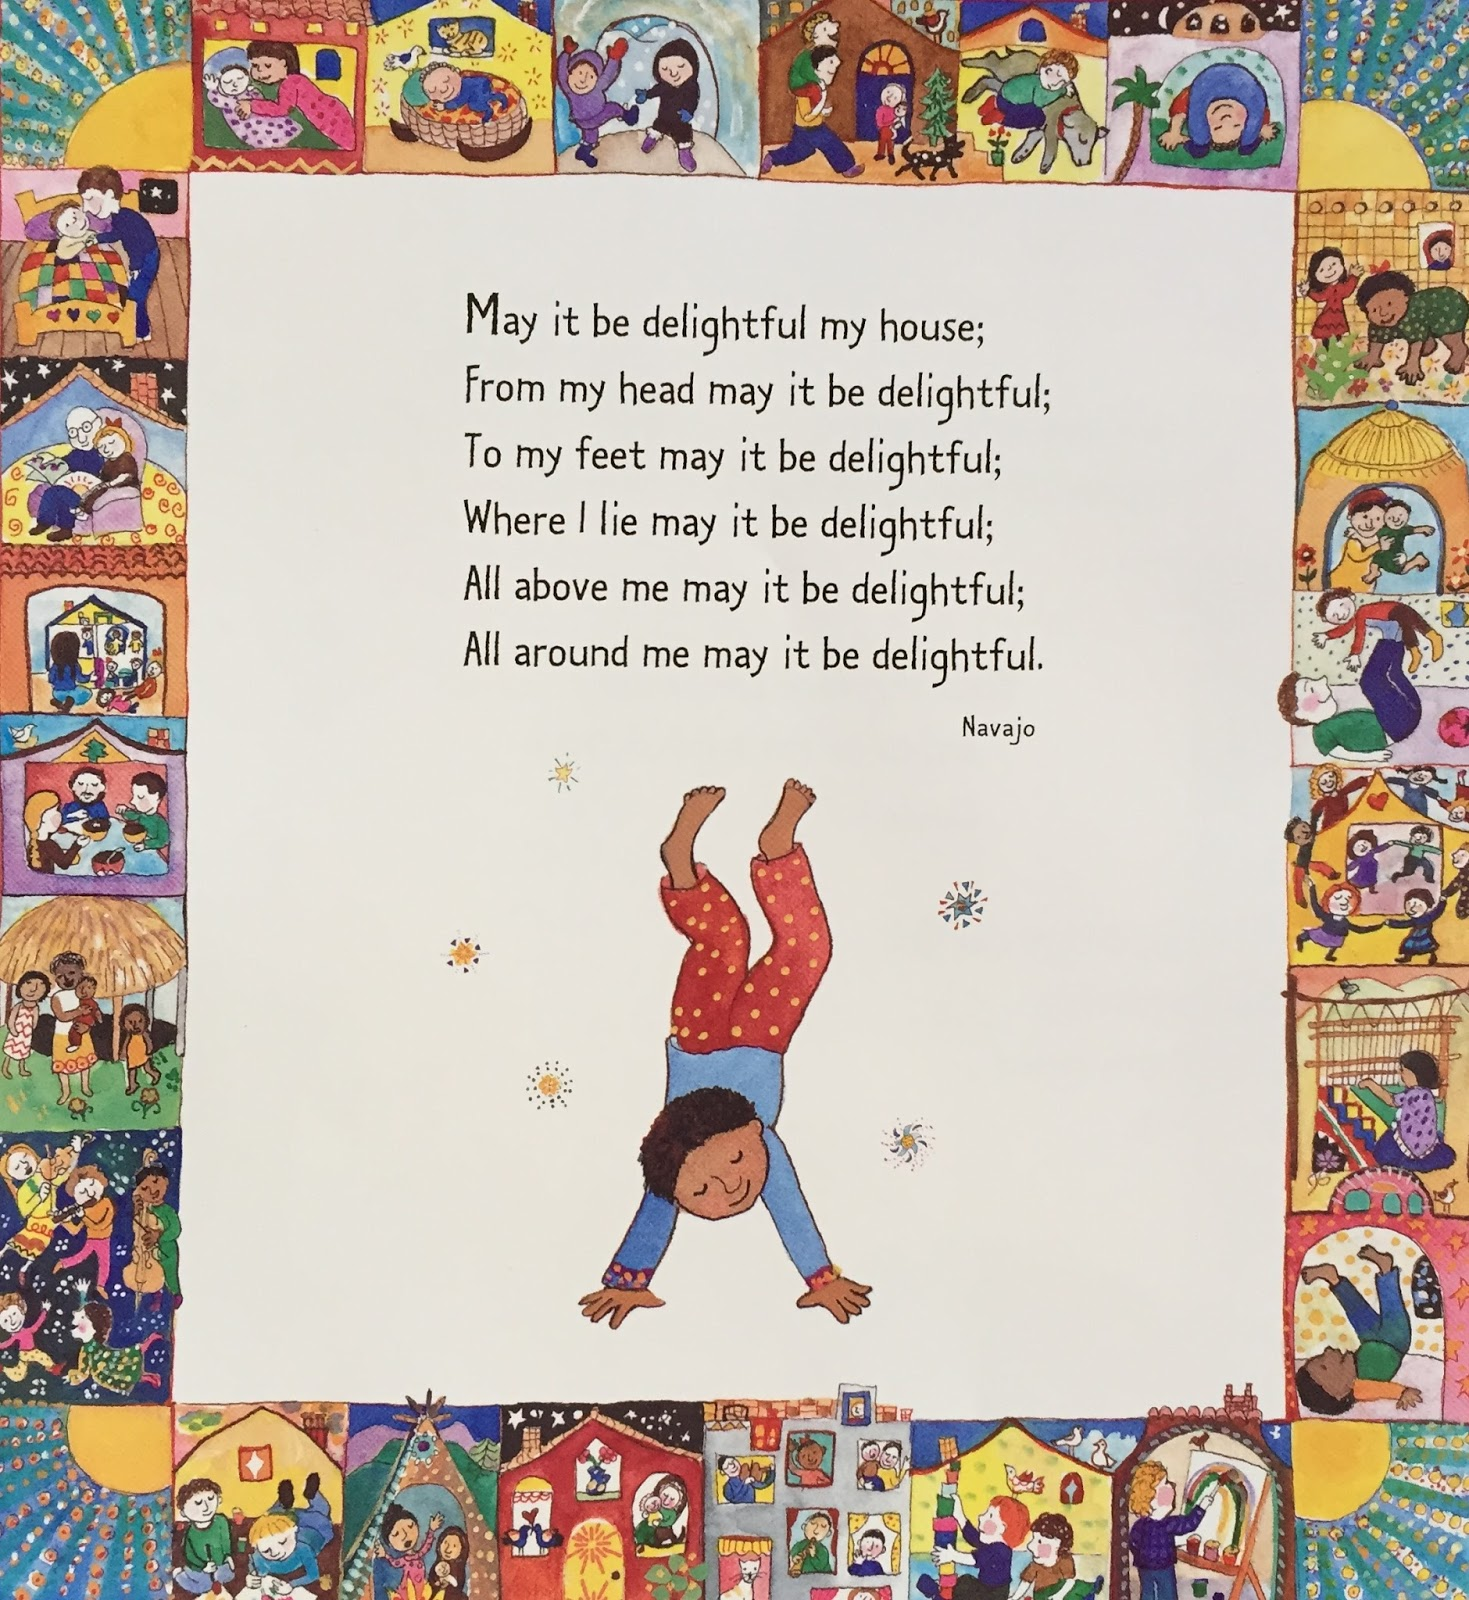 If you want to use a poem in worship, choose a poem in a picture book and  project the image on a wall or screen. This one would be beautiful!